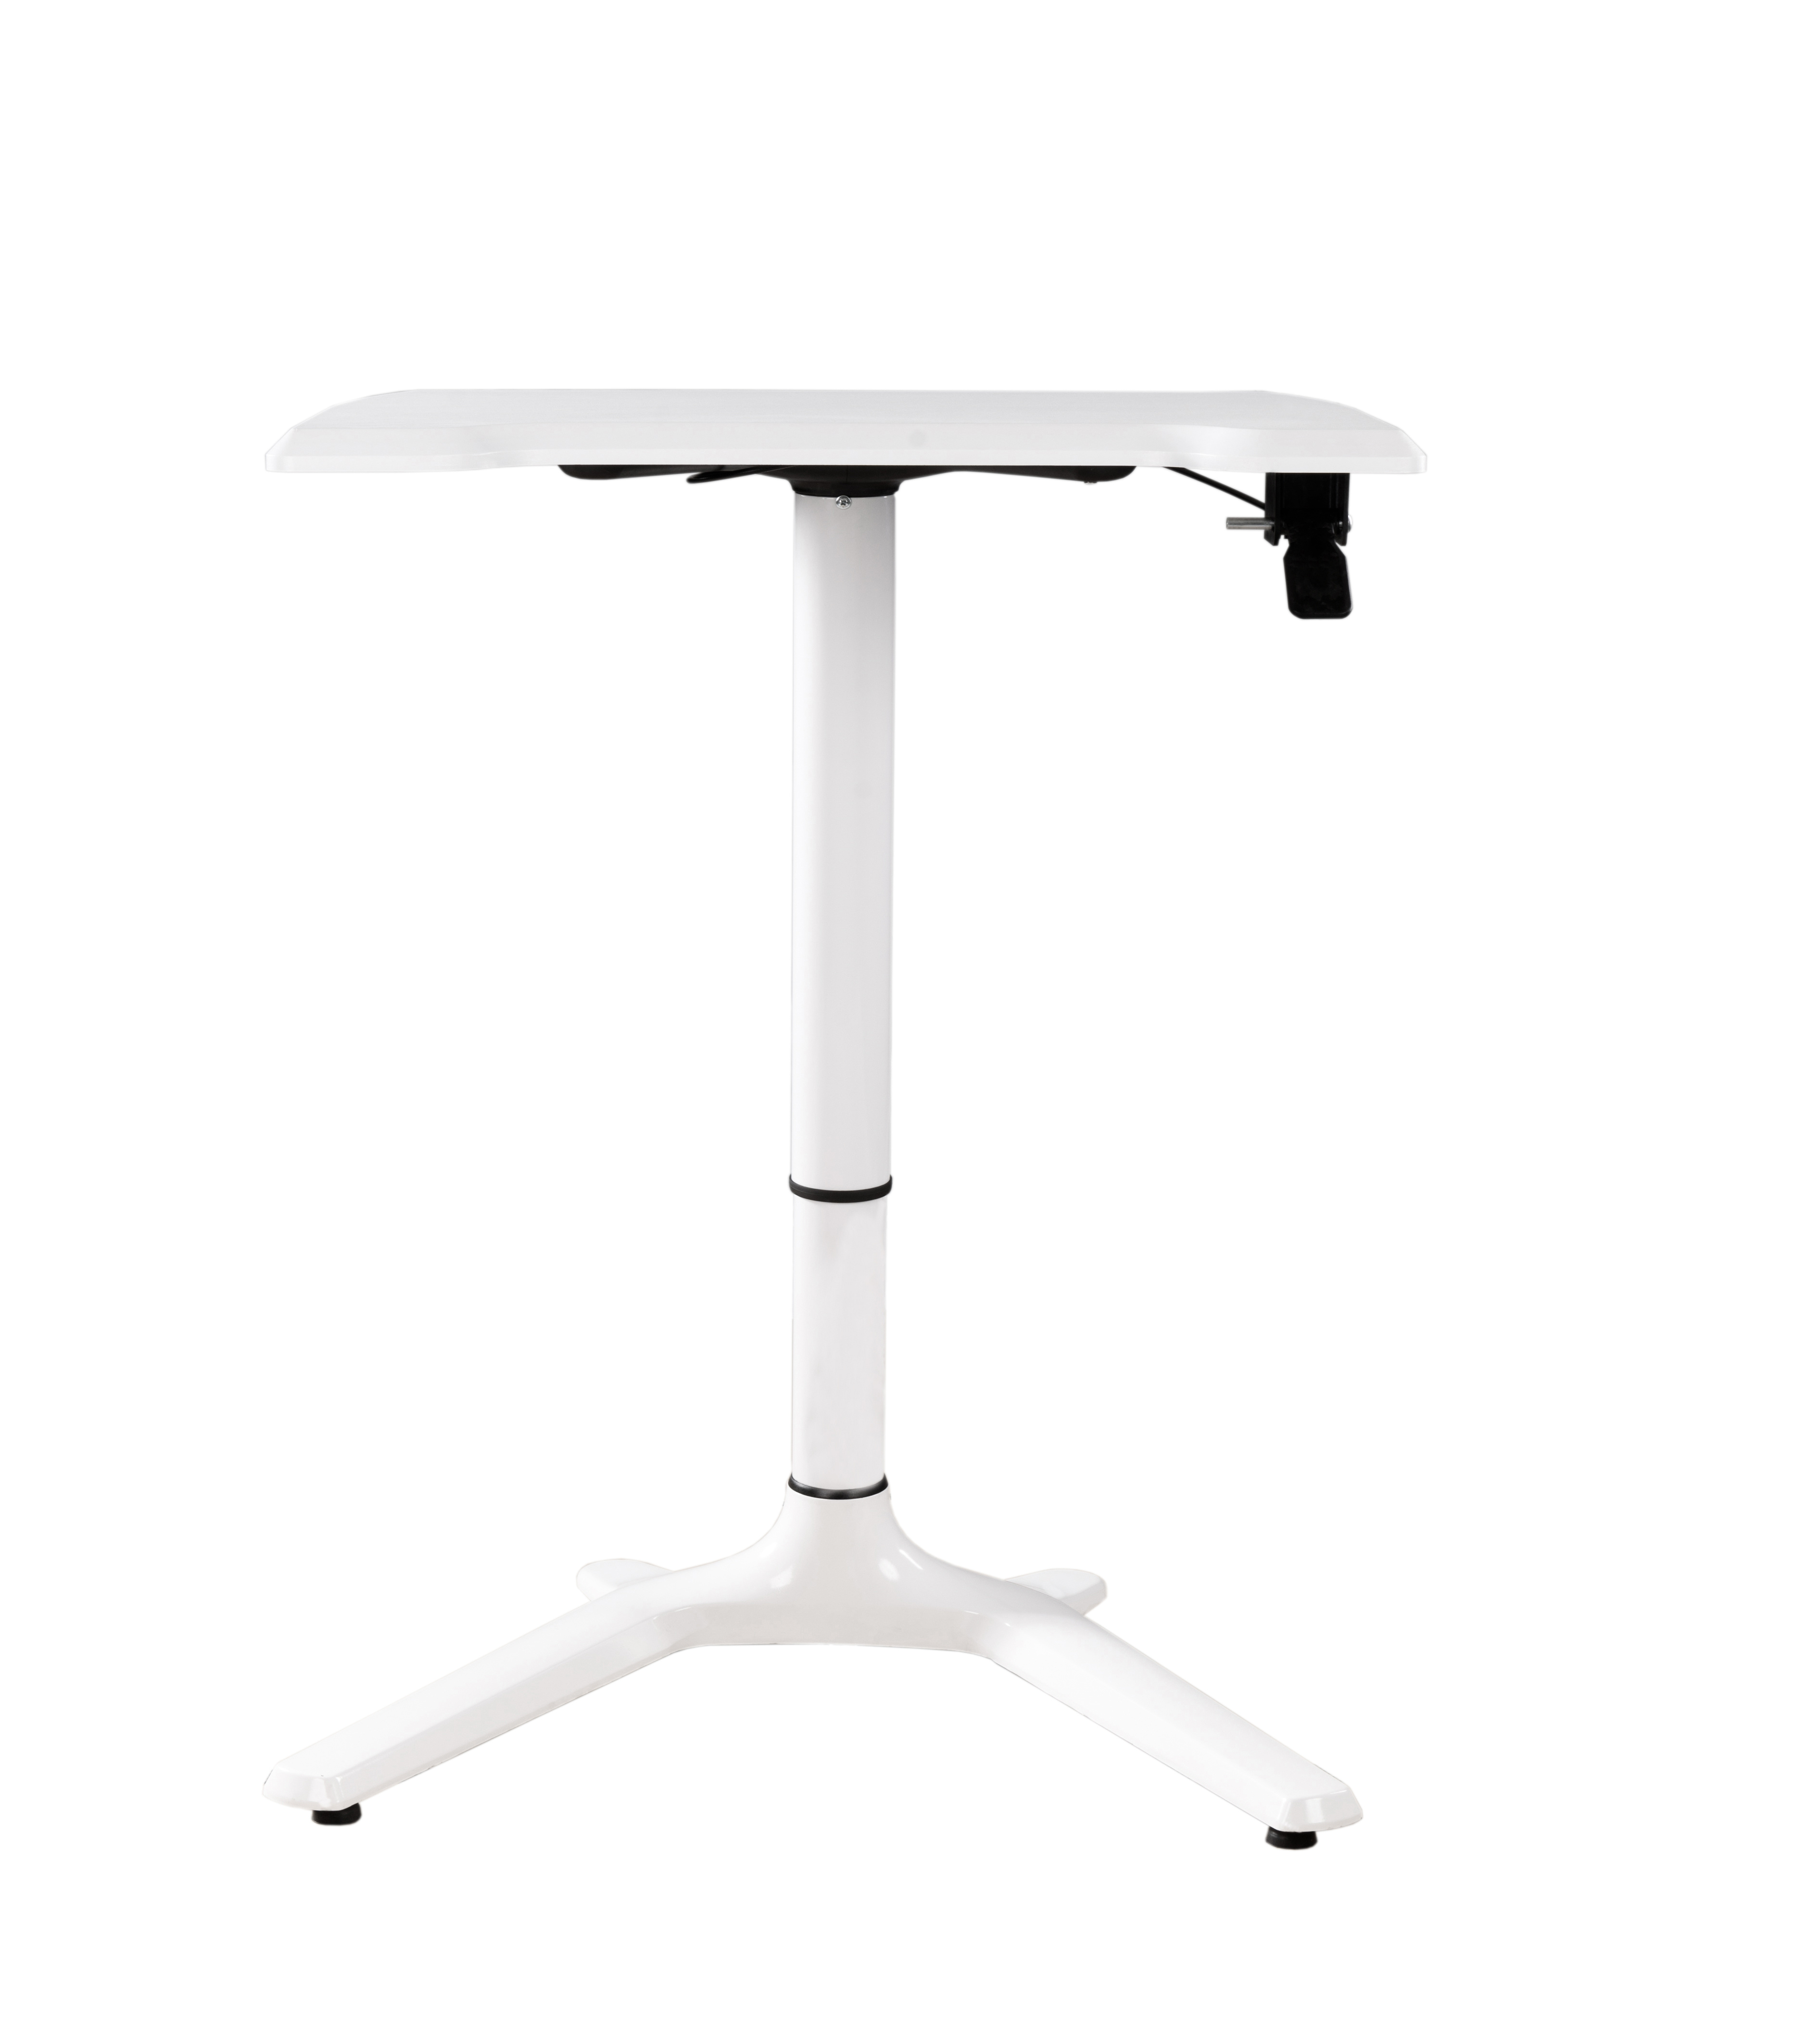 Sensational Hot Item White Color Height Adjustable Office Desk Table For Reading And Laptop Download Free Architecture Designs Scobabritishbridgeorg